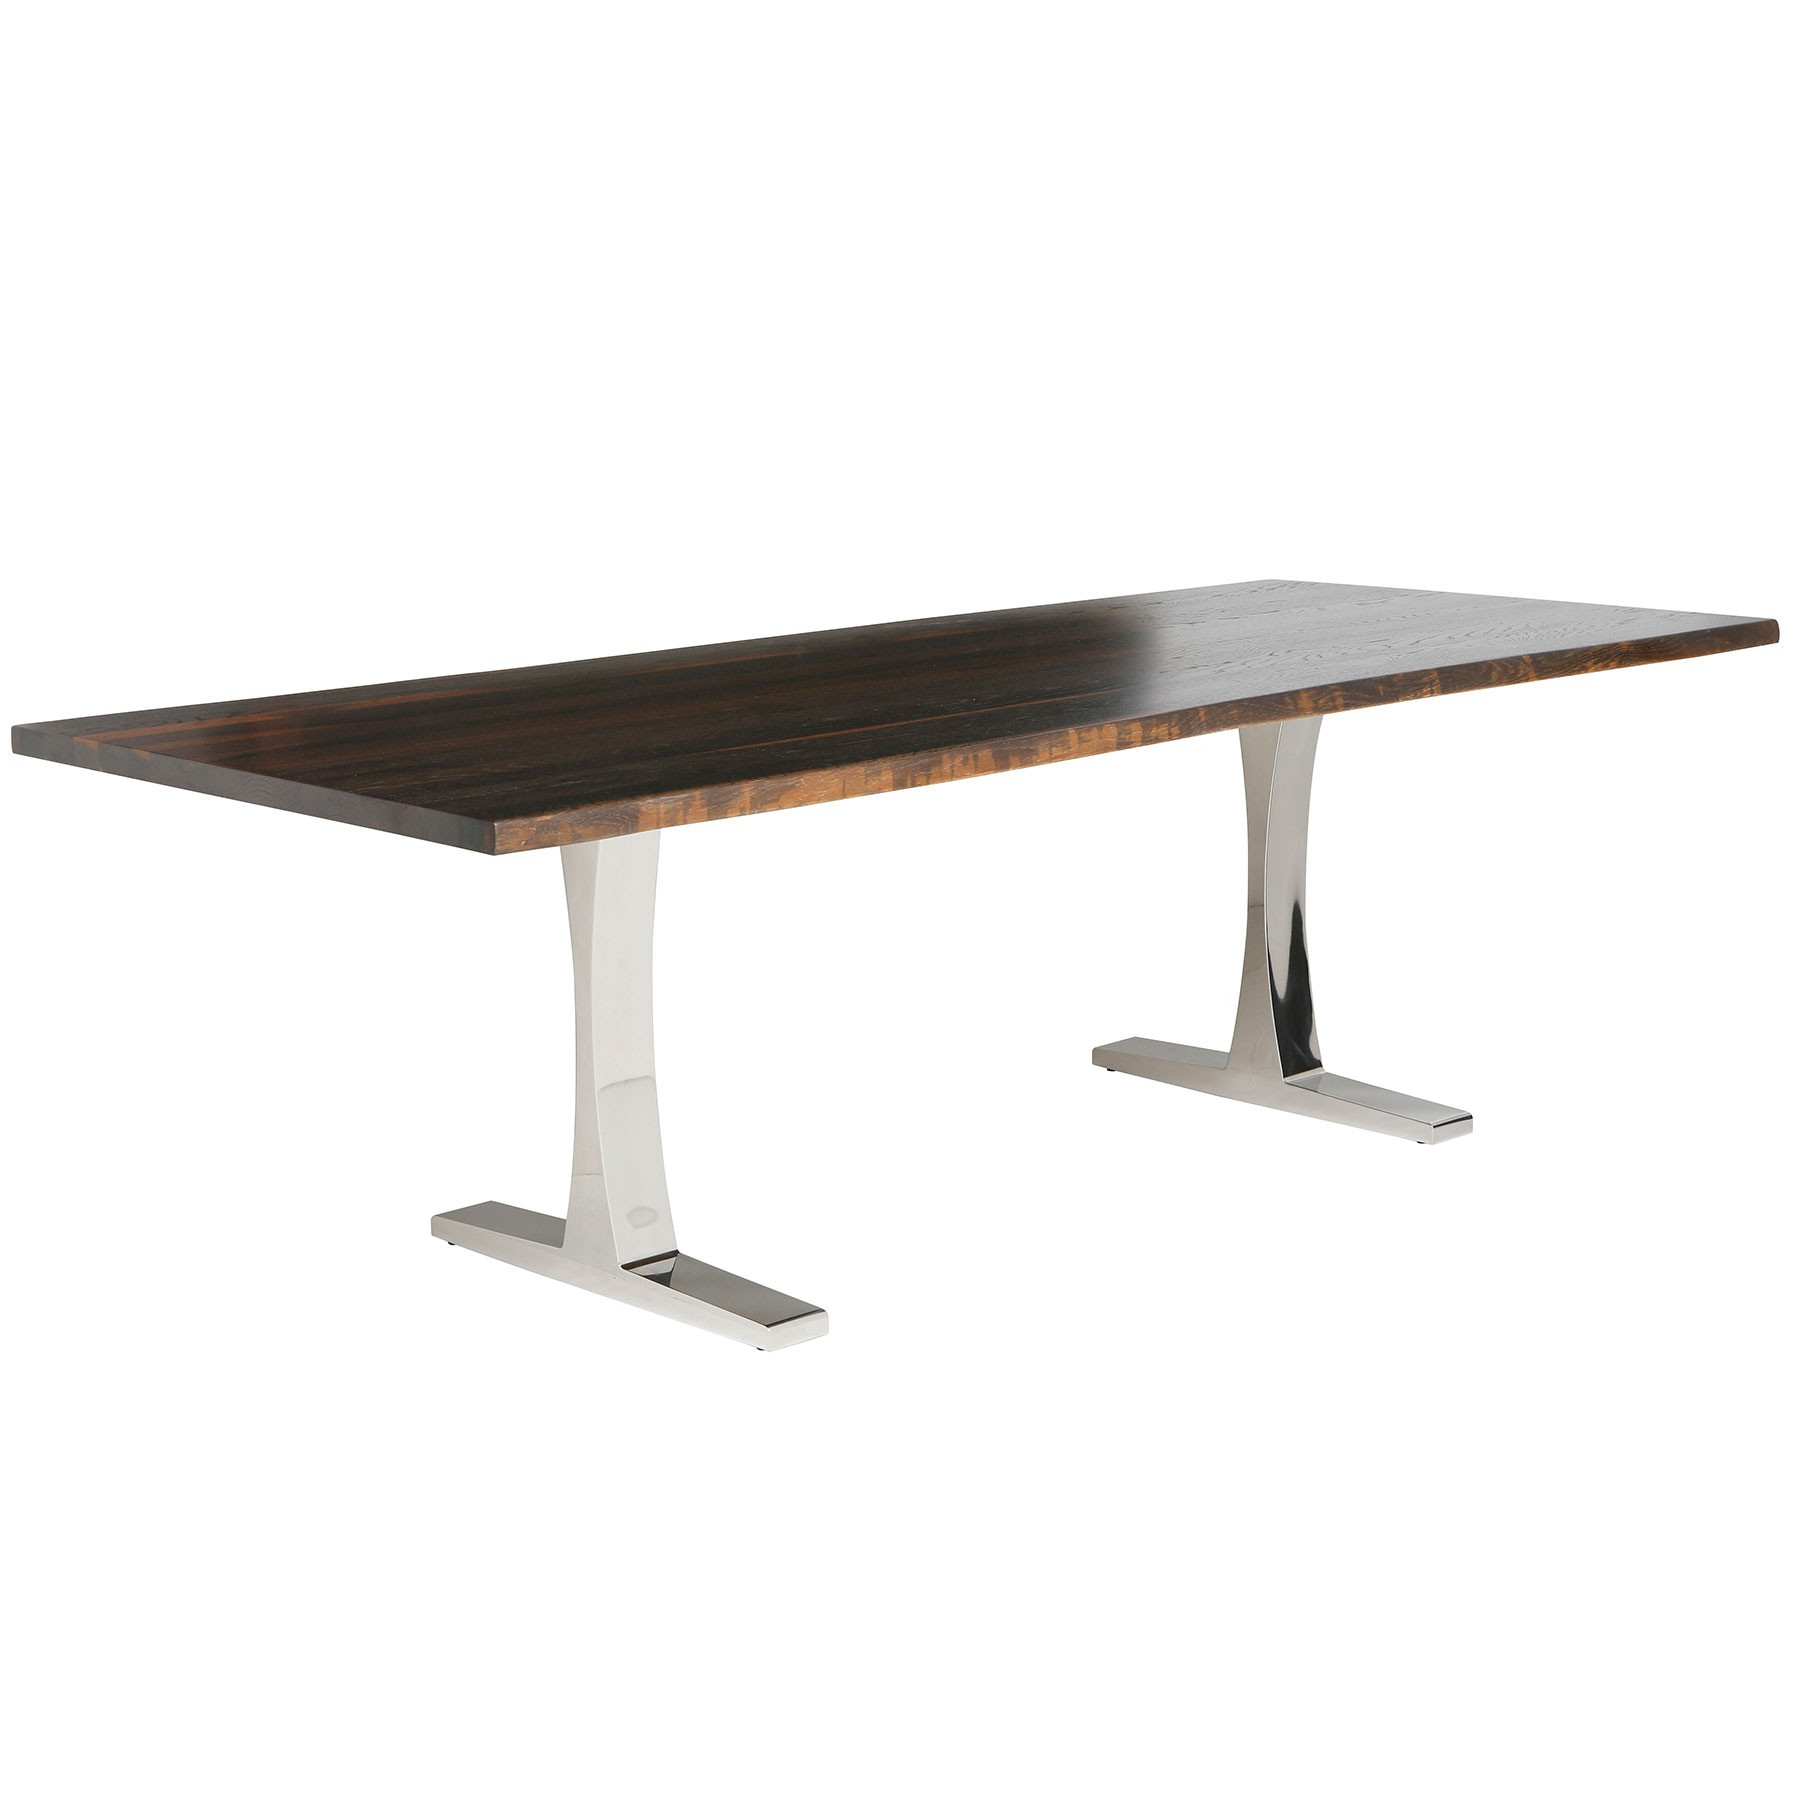 2017 Toulouse Dining Table – Seared Oak / Stainless Within Dining Tables In Seared Oak (View 3 of 30)